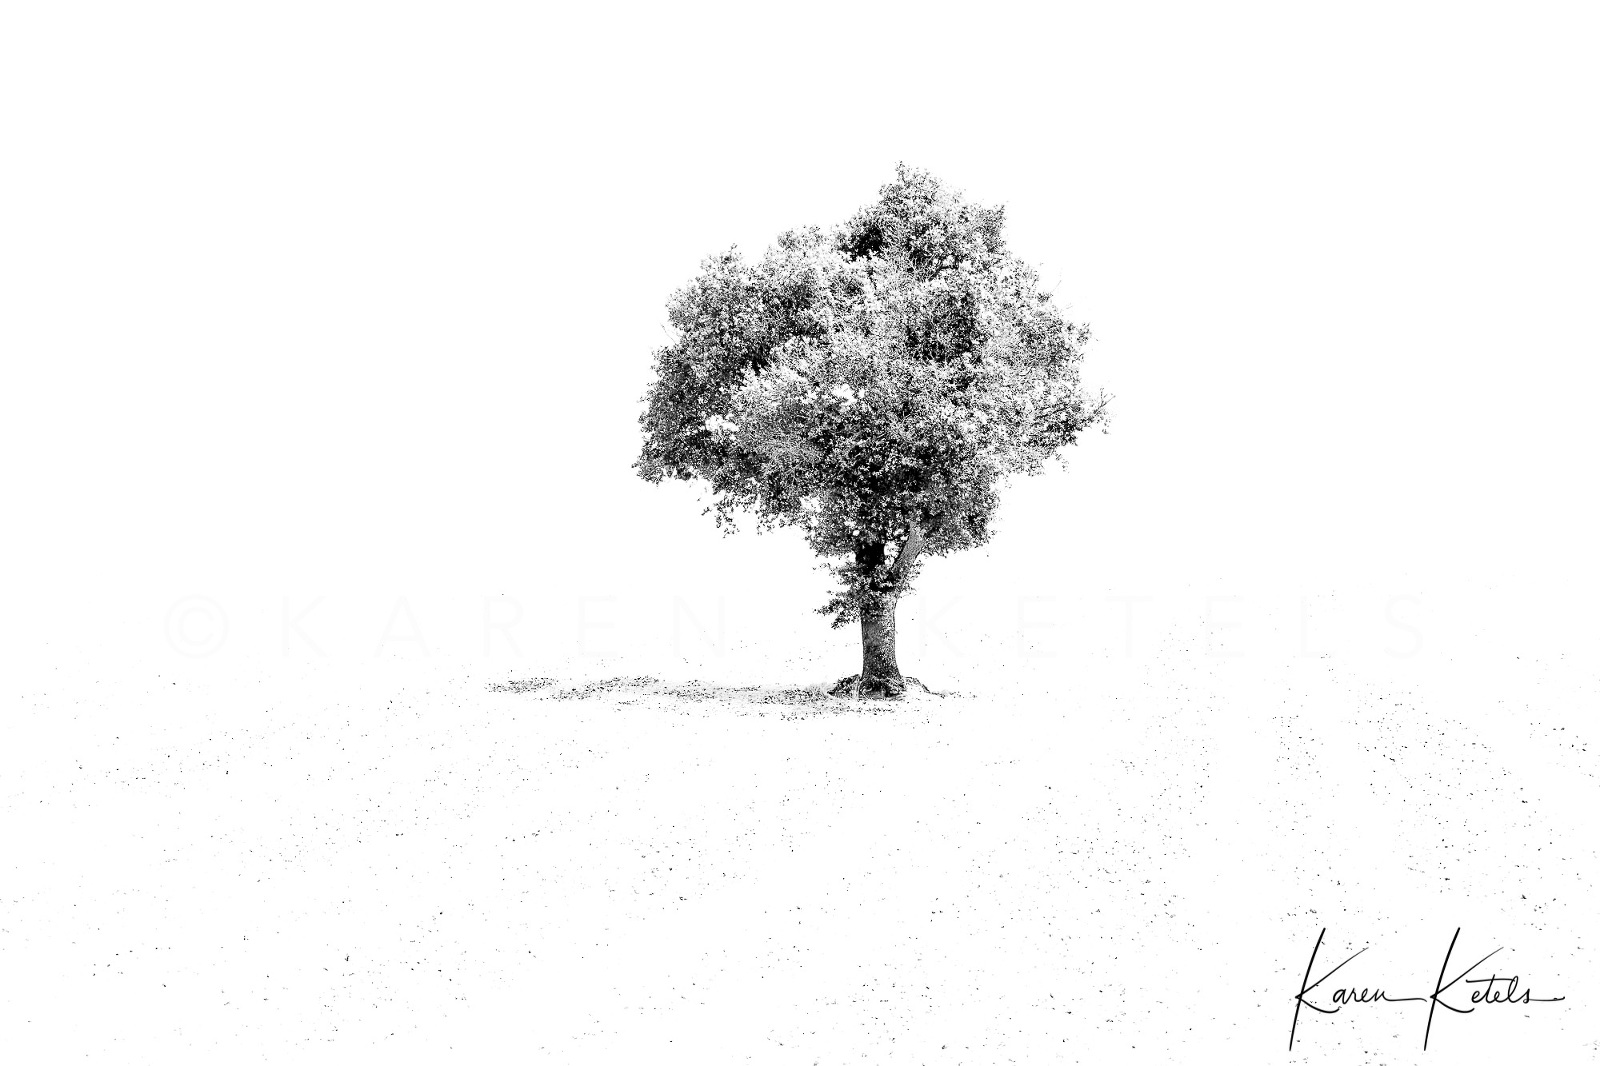 Black- and white image of a tree, standing totally alone in the field. Minimalistic image by Karen Ketels